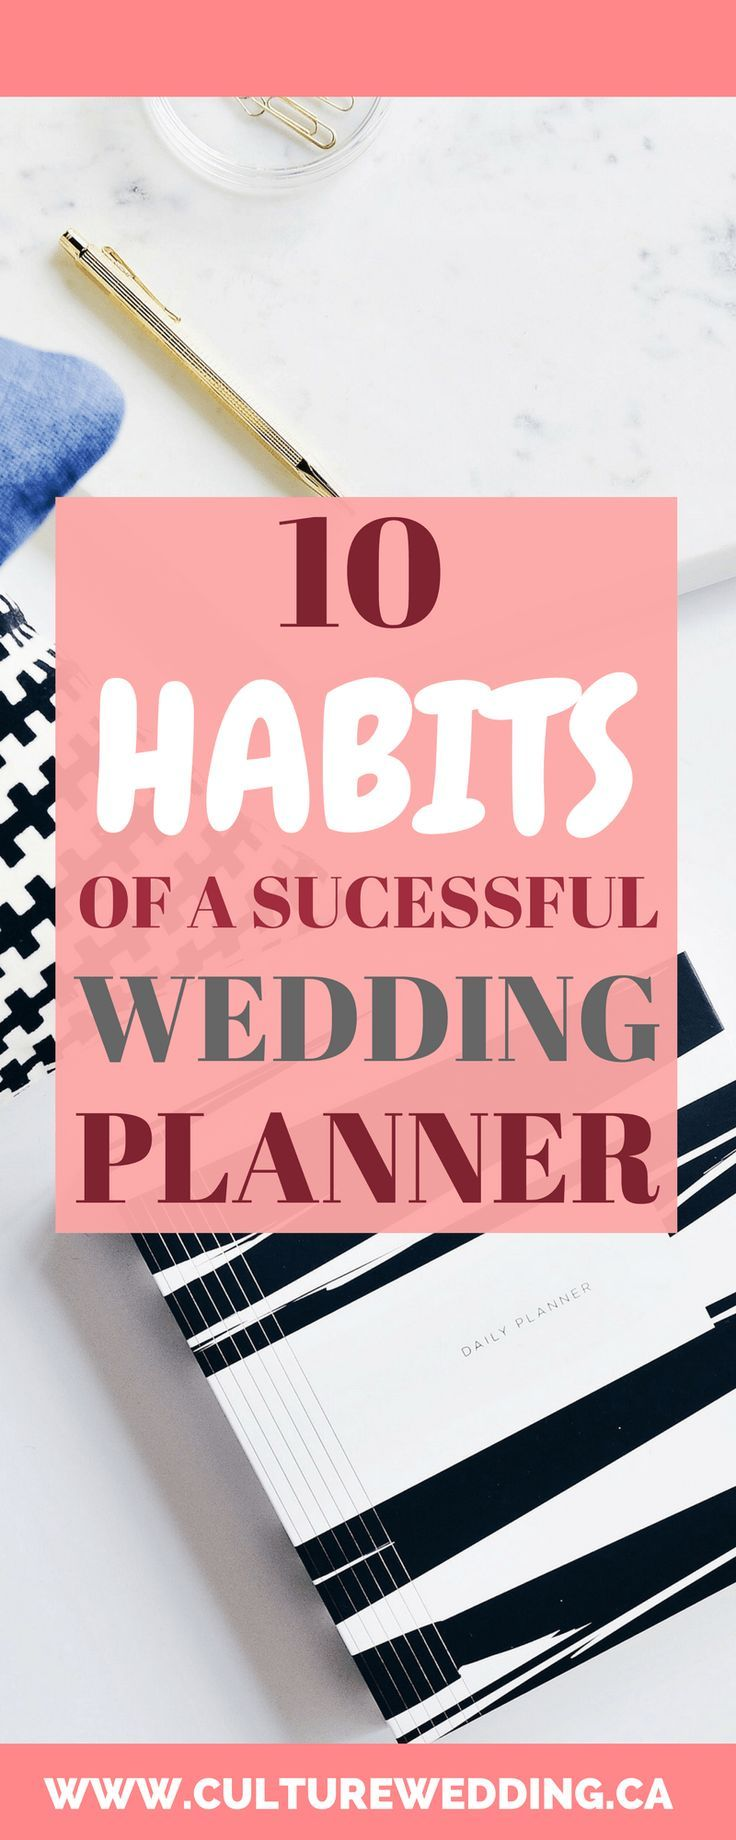 10 Habits of a Successful Wedding Planner – start a wedding business